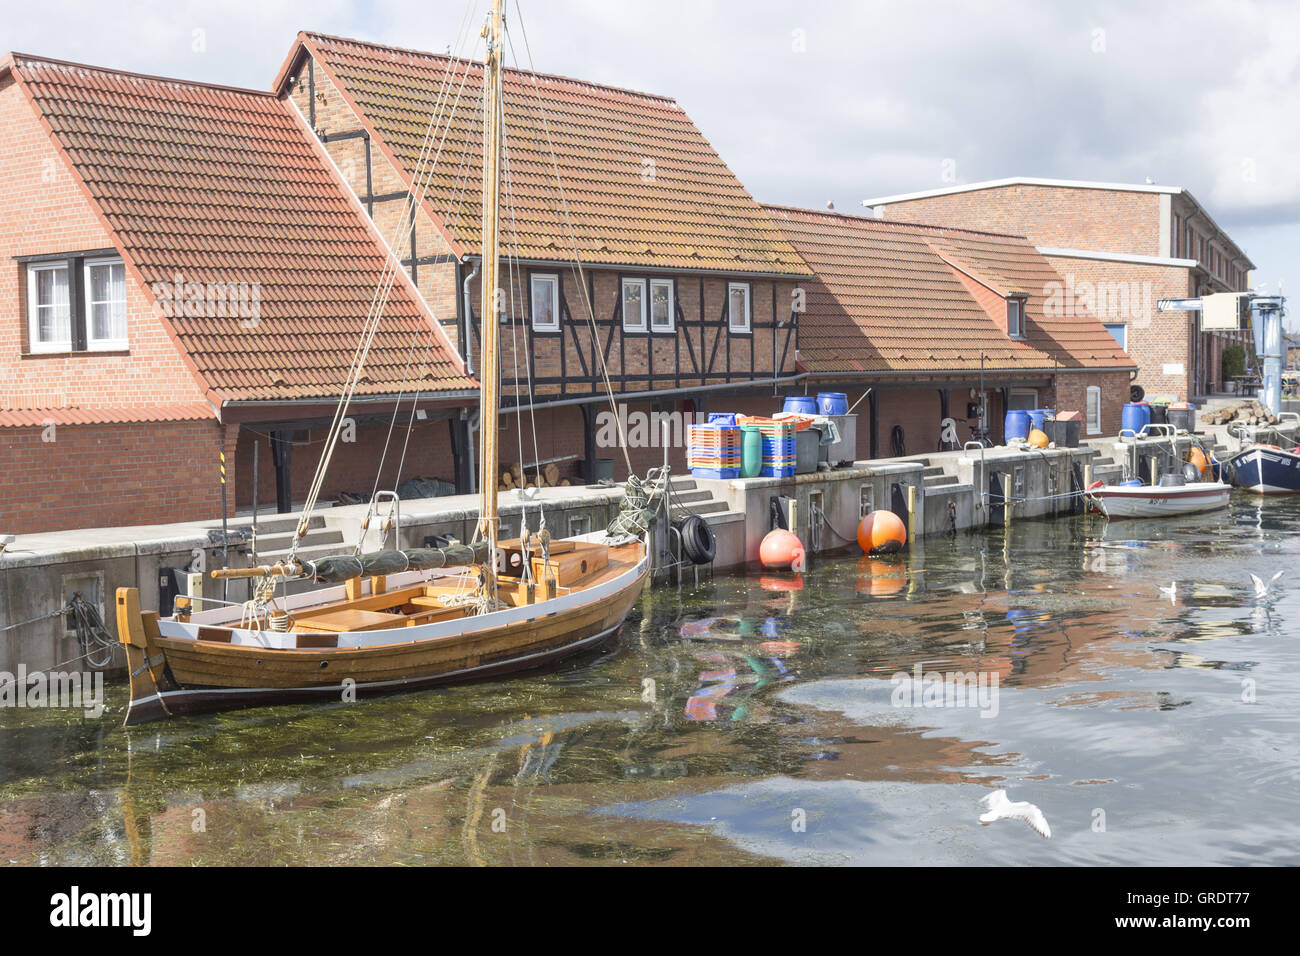 Sailing Cutter With Wooden Mast In The Old Port Of Wismar Mecklenburg-Vorpommern - Stock Image